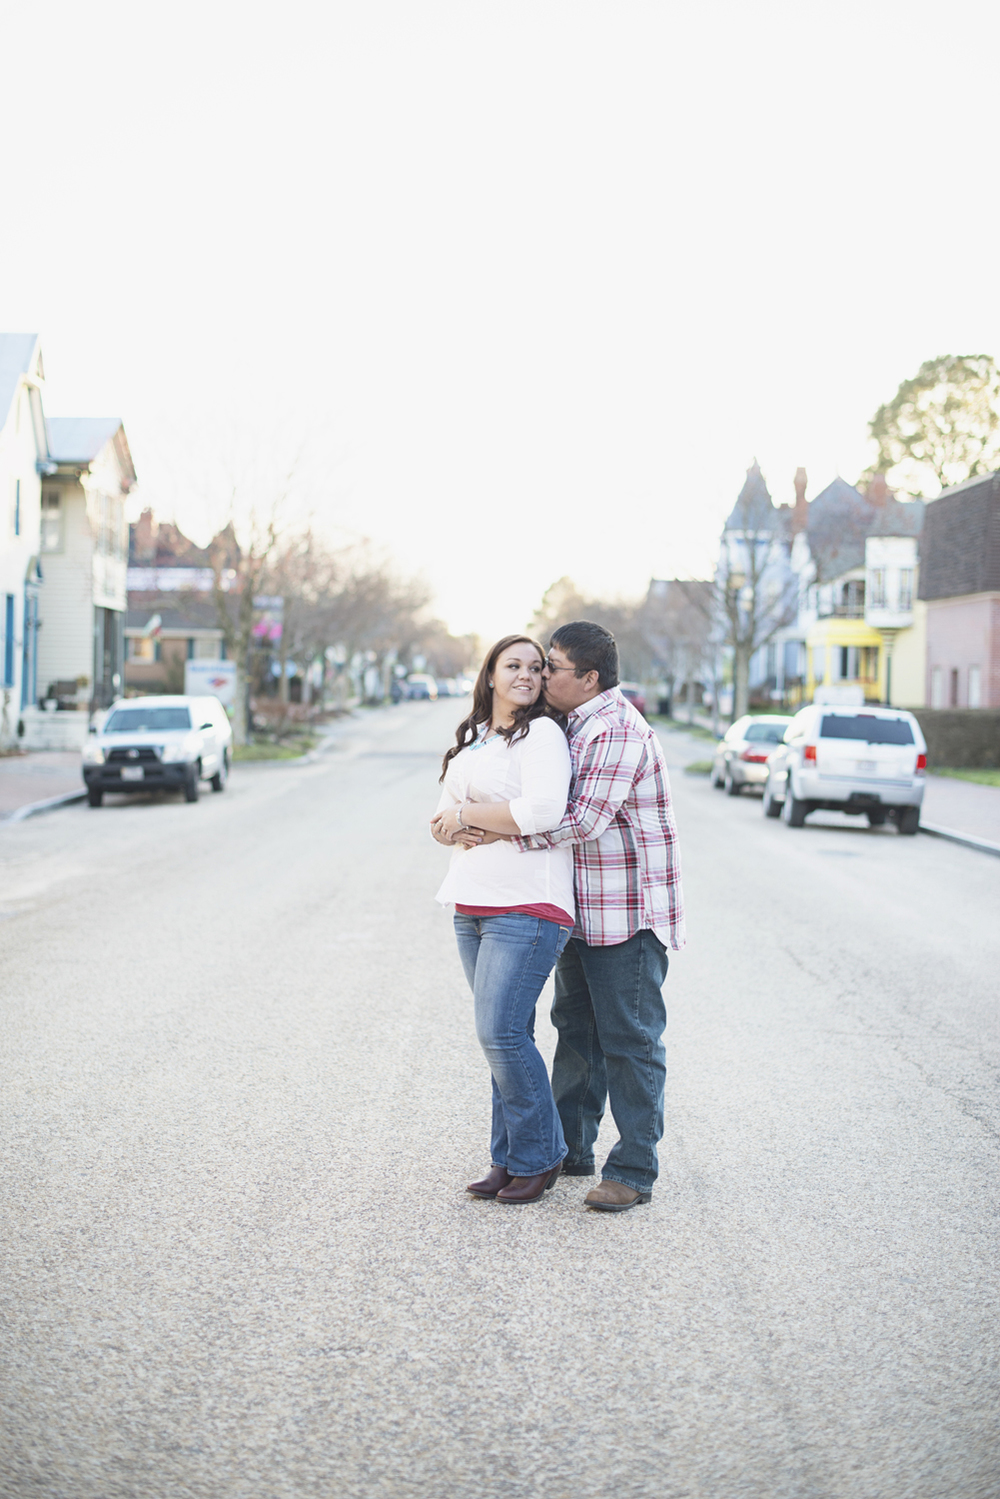 Cute engagement session poses | Downtown engagement session